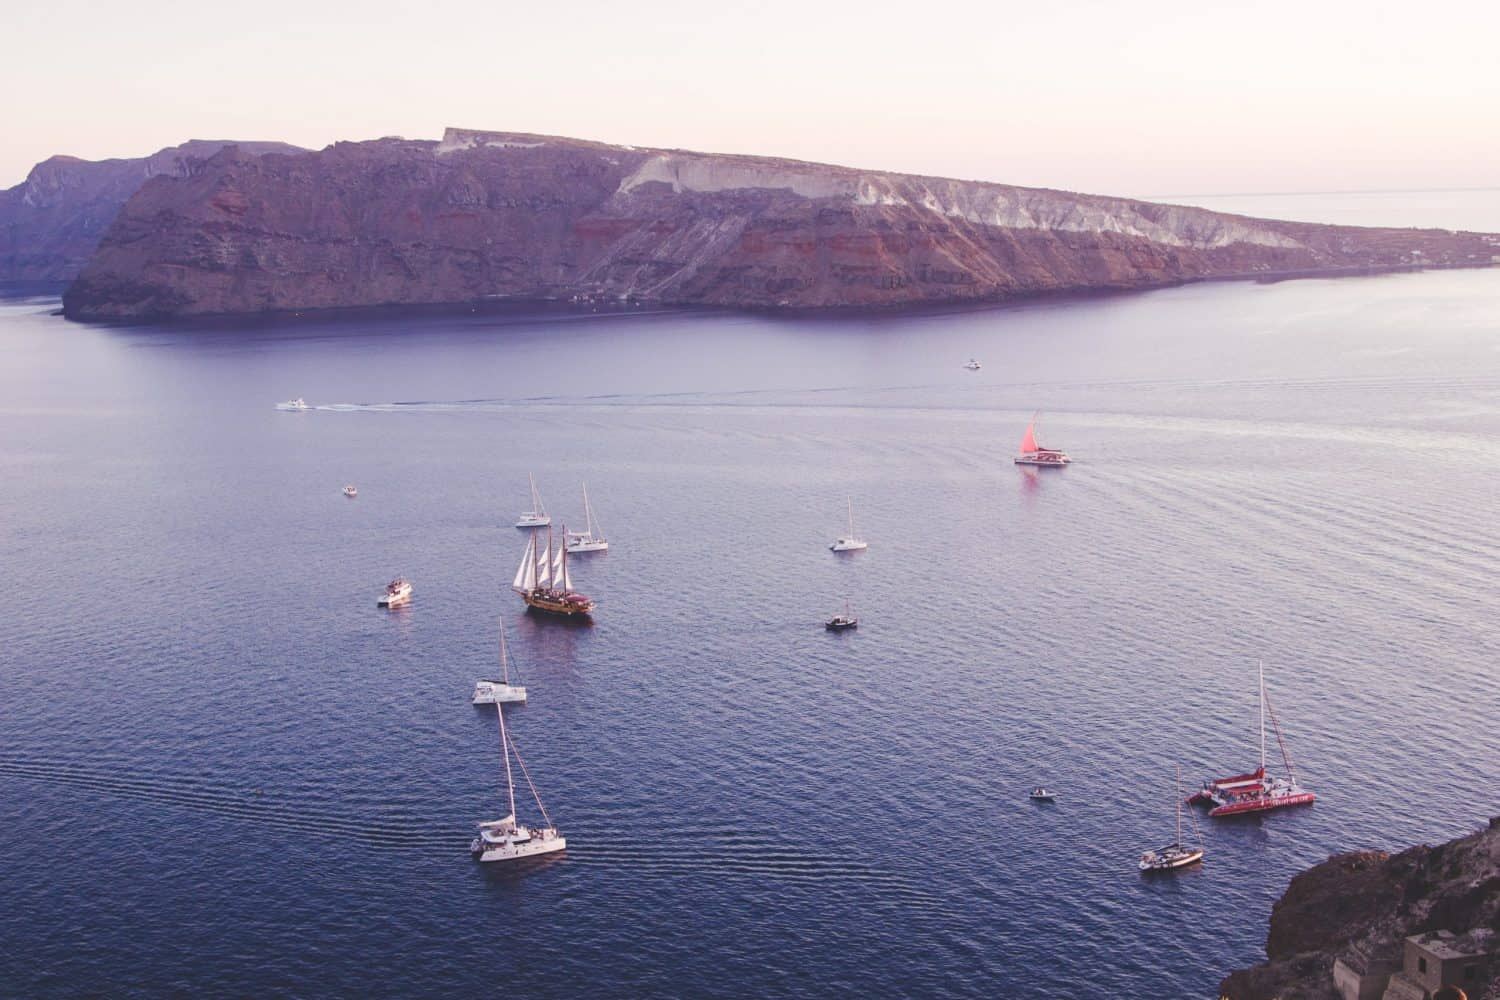 Boats on the water in Santorini during the sunset in Oia